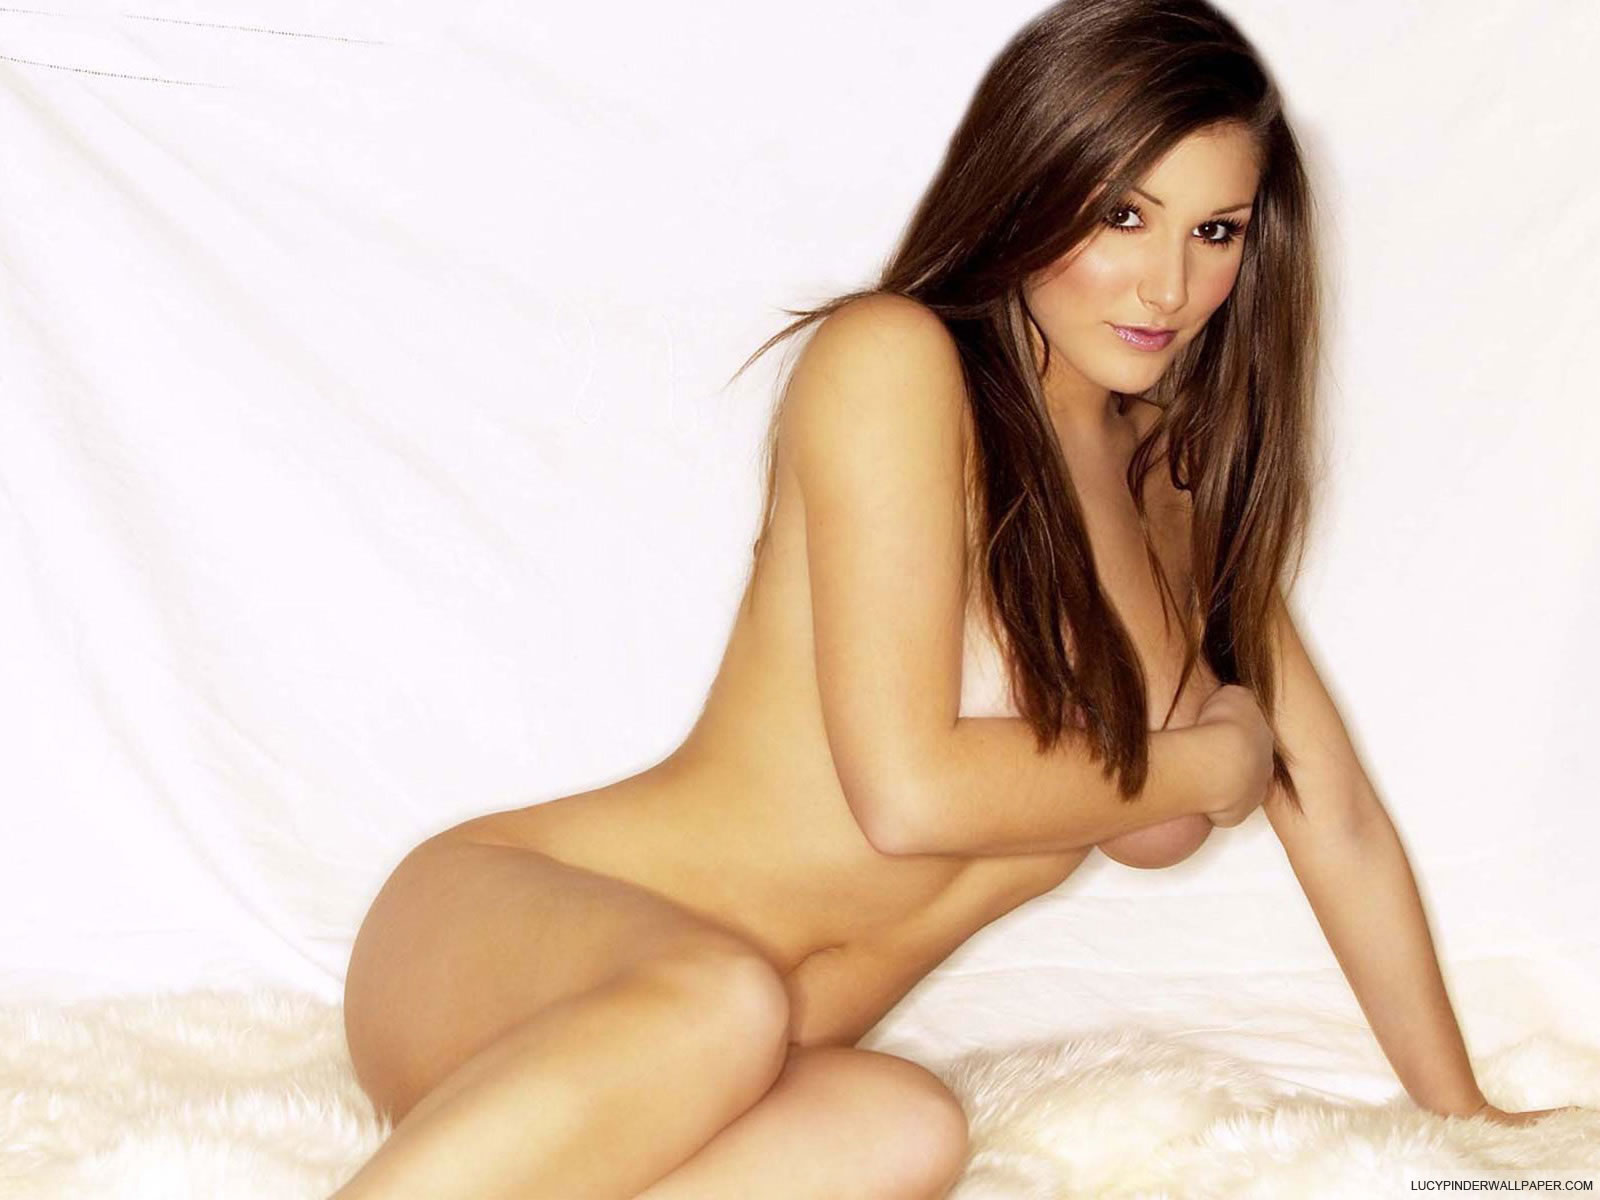 3840x1080 Wallpaper Hd Lucy Nine Lucy Pinder Wallpapers Hot Amp Sexy Wallpapers